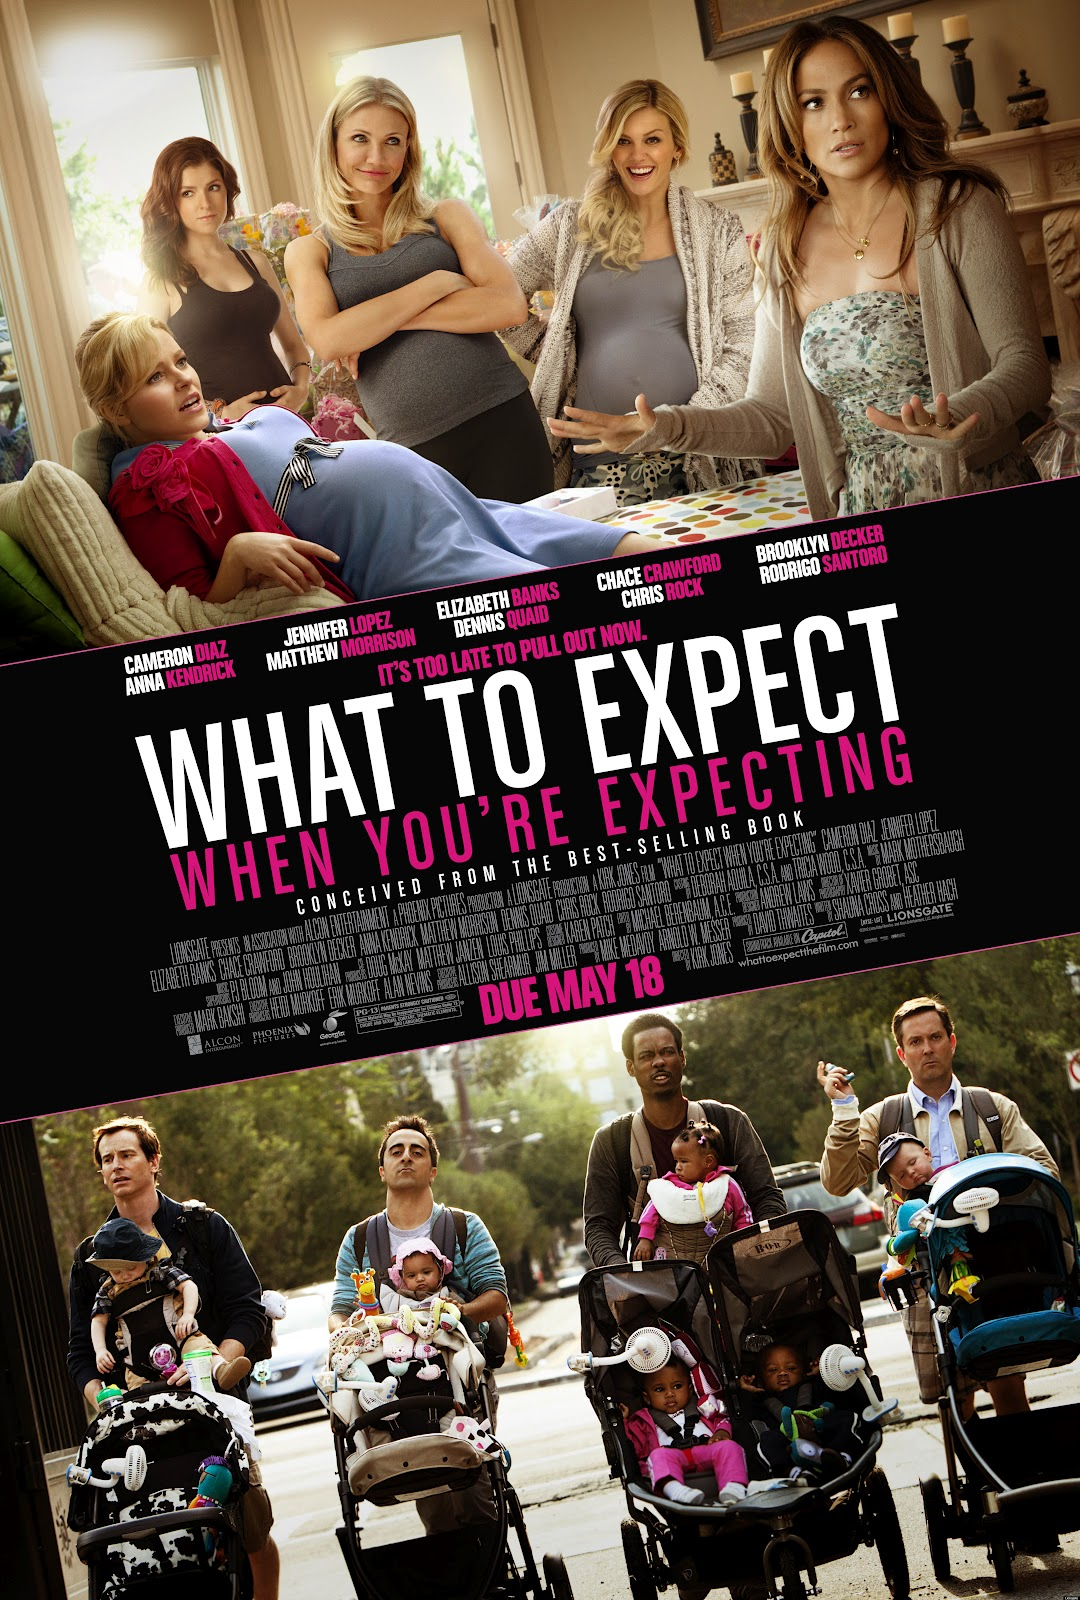 http://2.bp.blogspot.com/-5WrZzebC01U/T7agkJNQx1I/AAAAAAAACdw/fDuc1X42Njw/s1600/WHAT-TO-EXPECT-WHEN-YOURE-EXPECTING.jpg